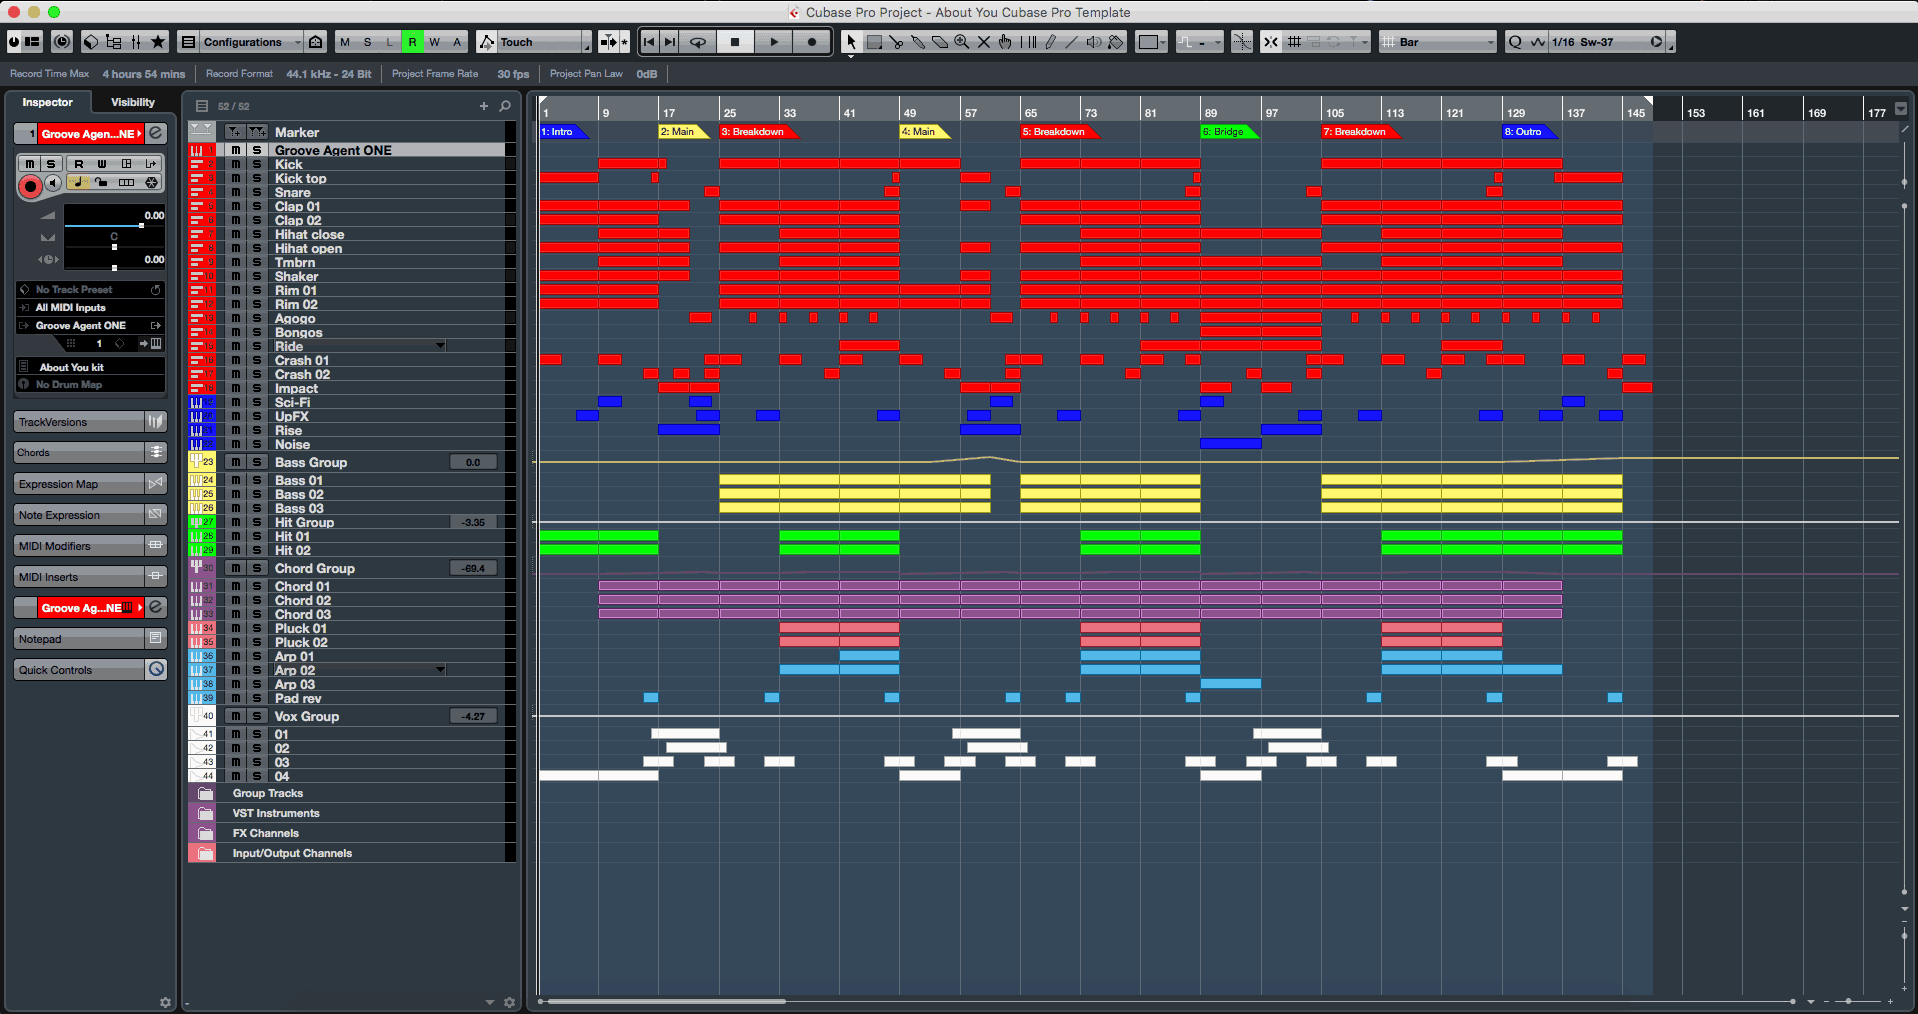 about-you-cubase-pro-template